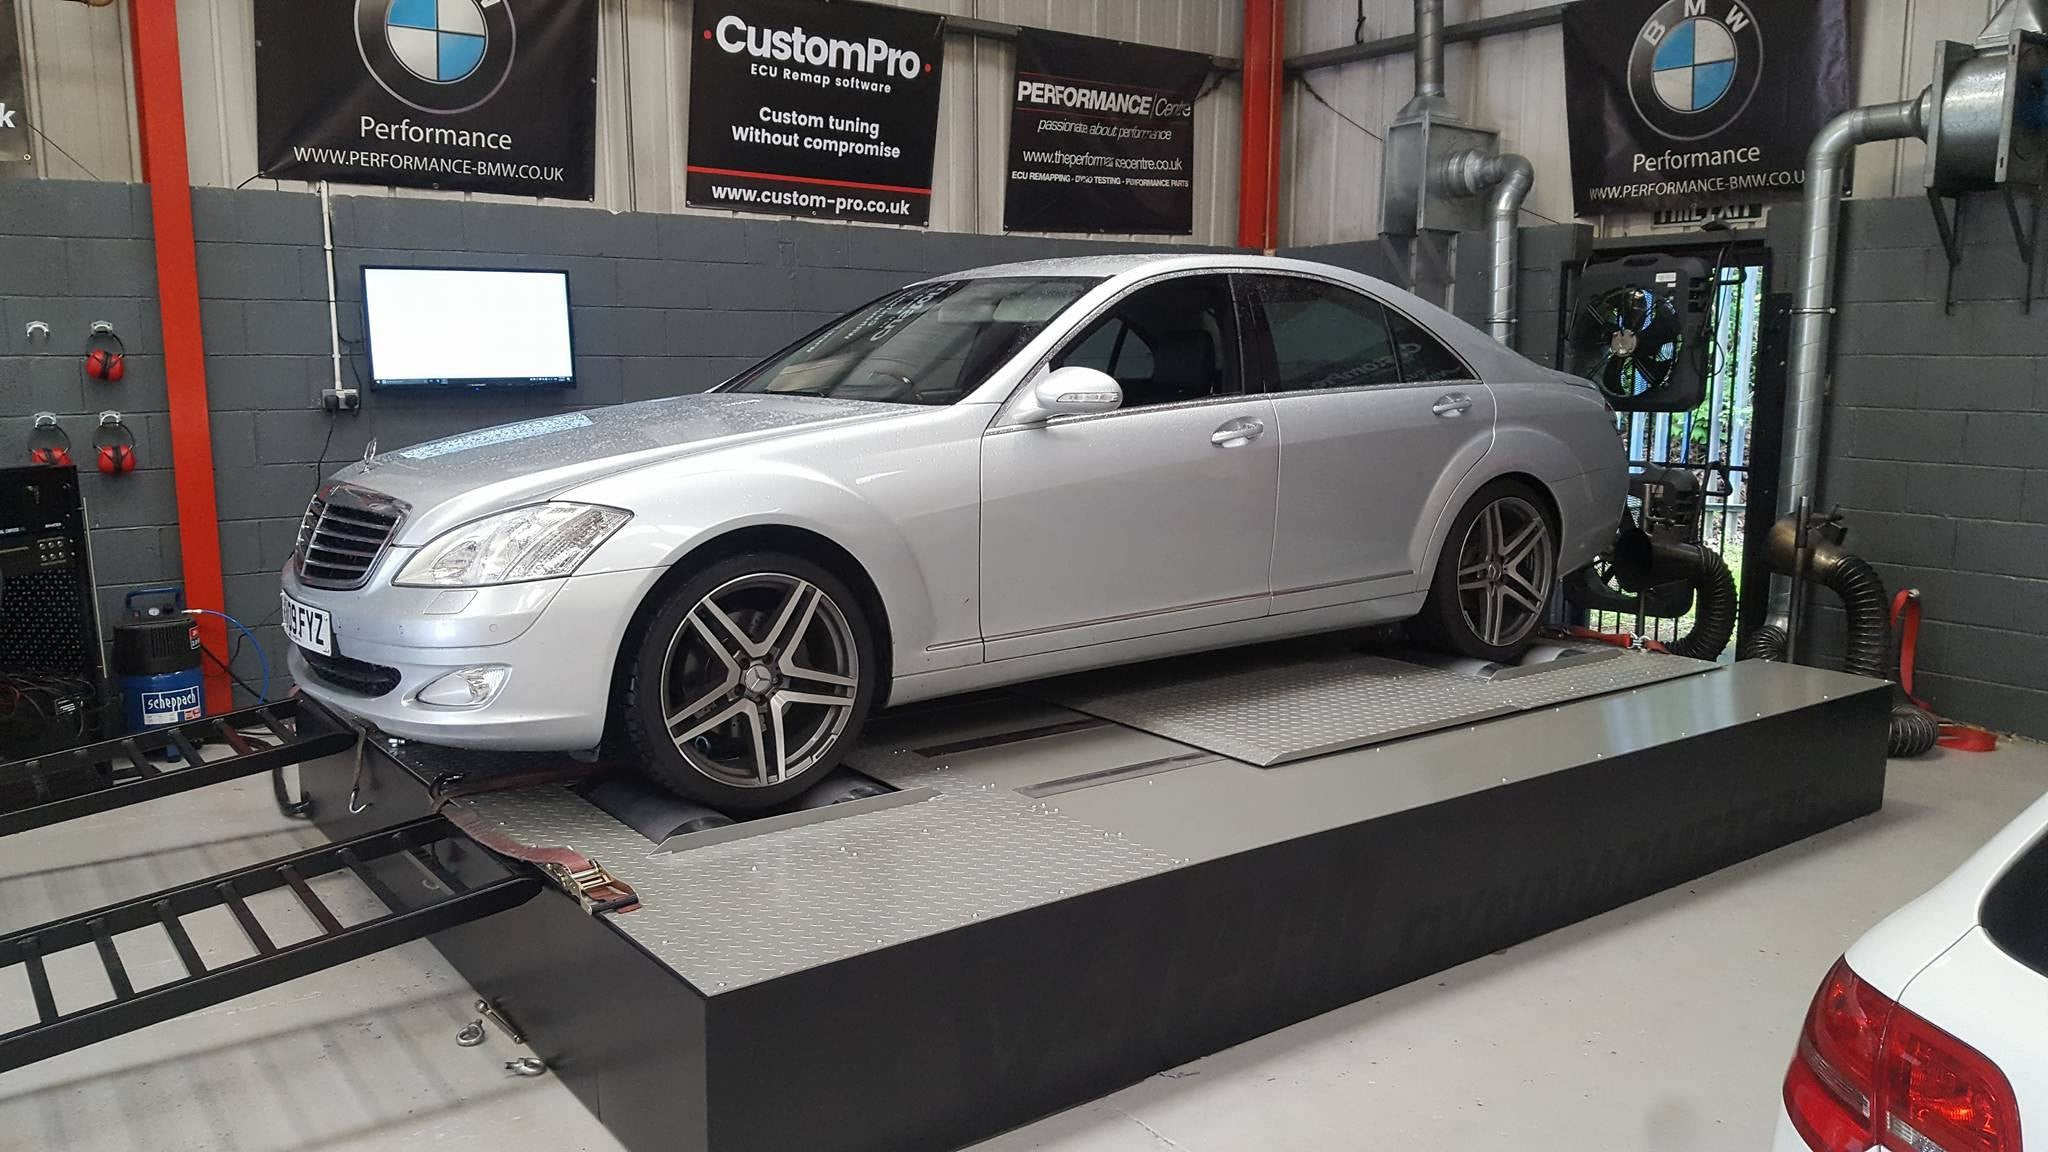 Mercedes S320 CDI - CustomPro remap